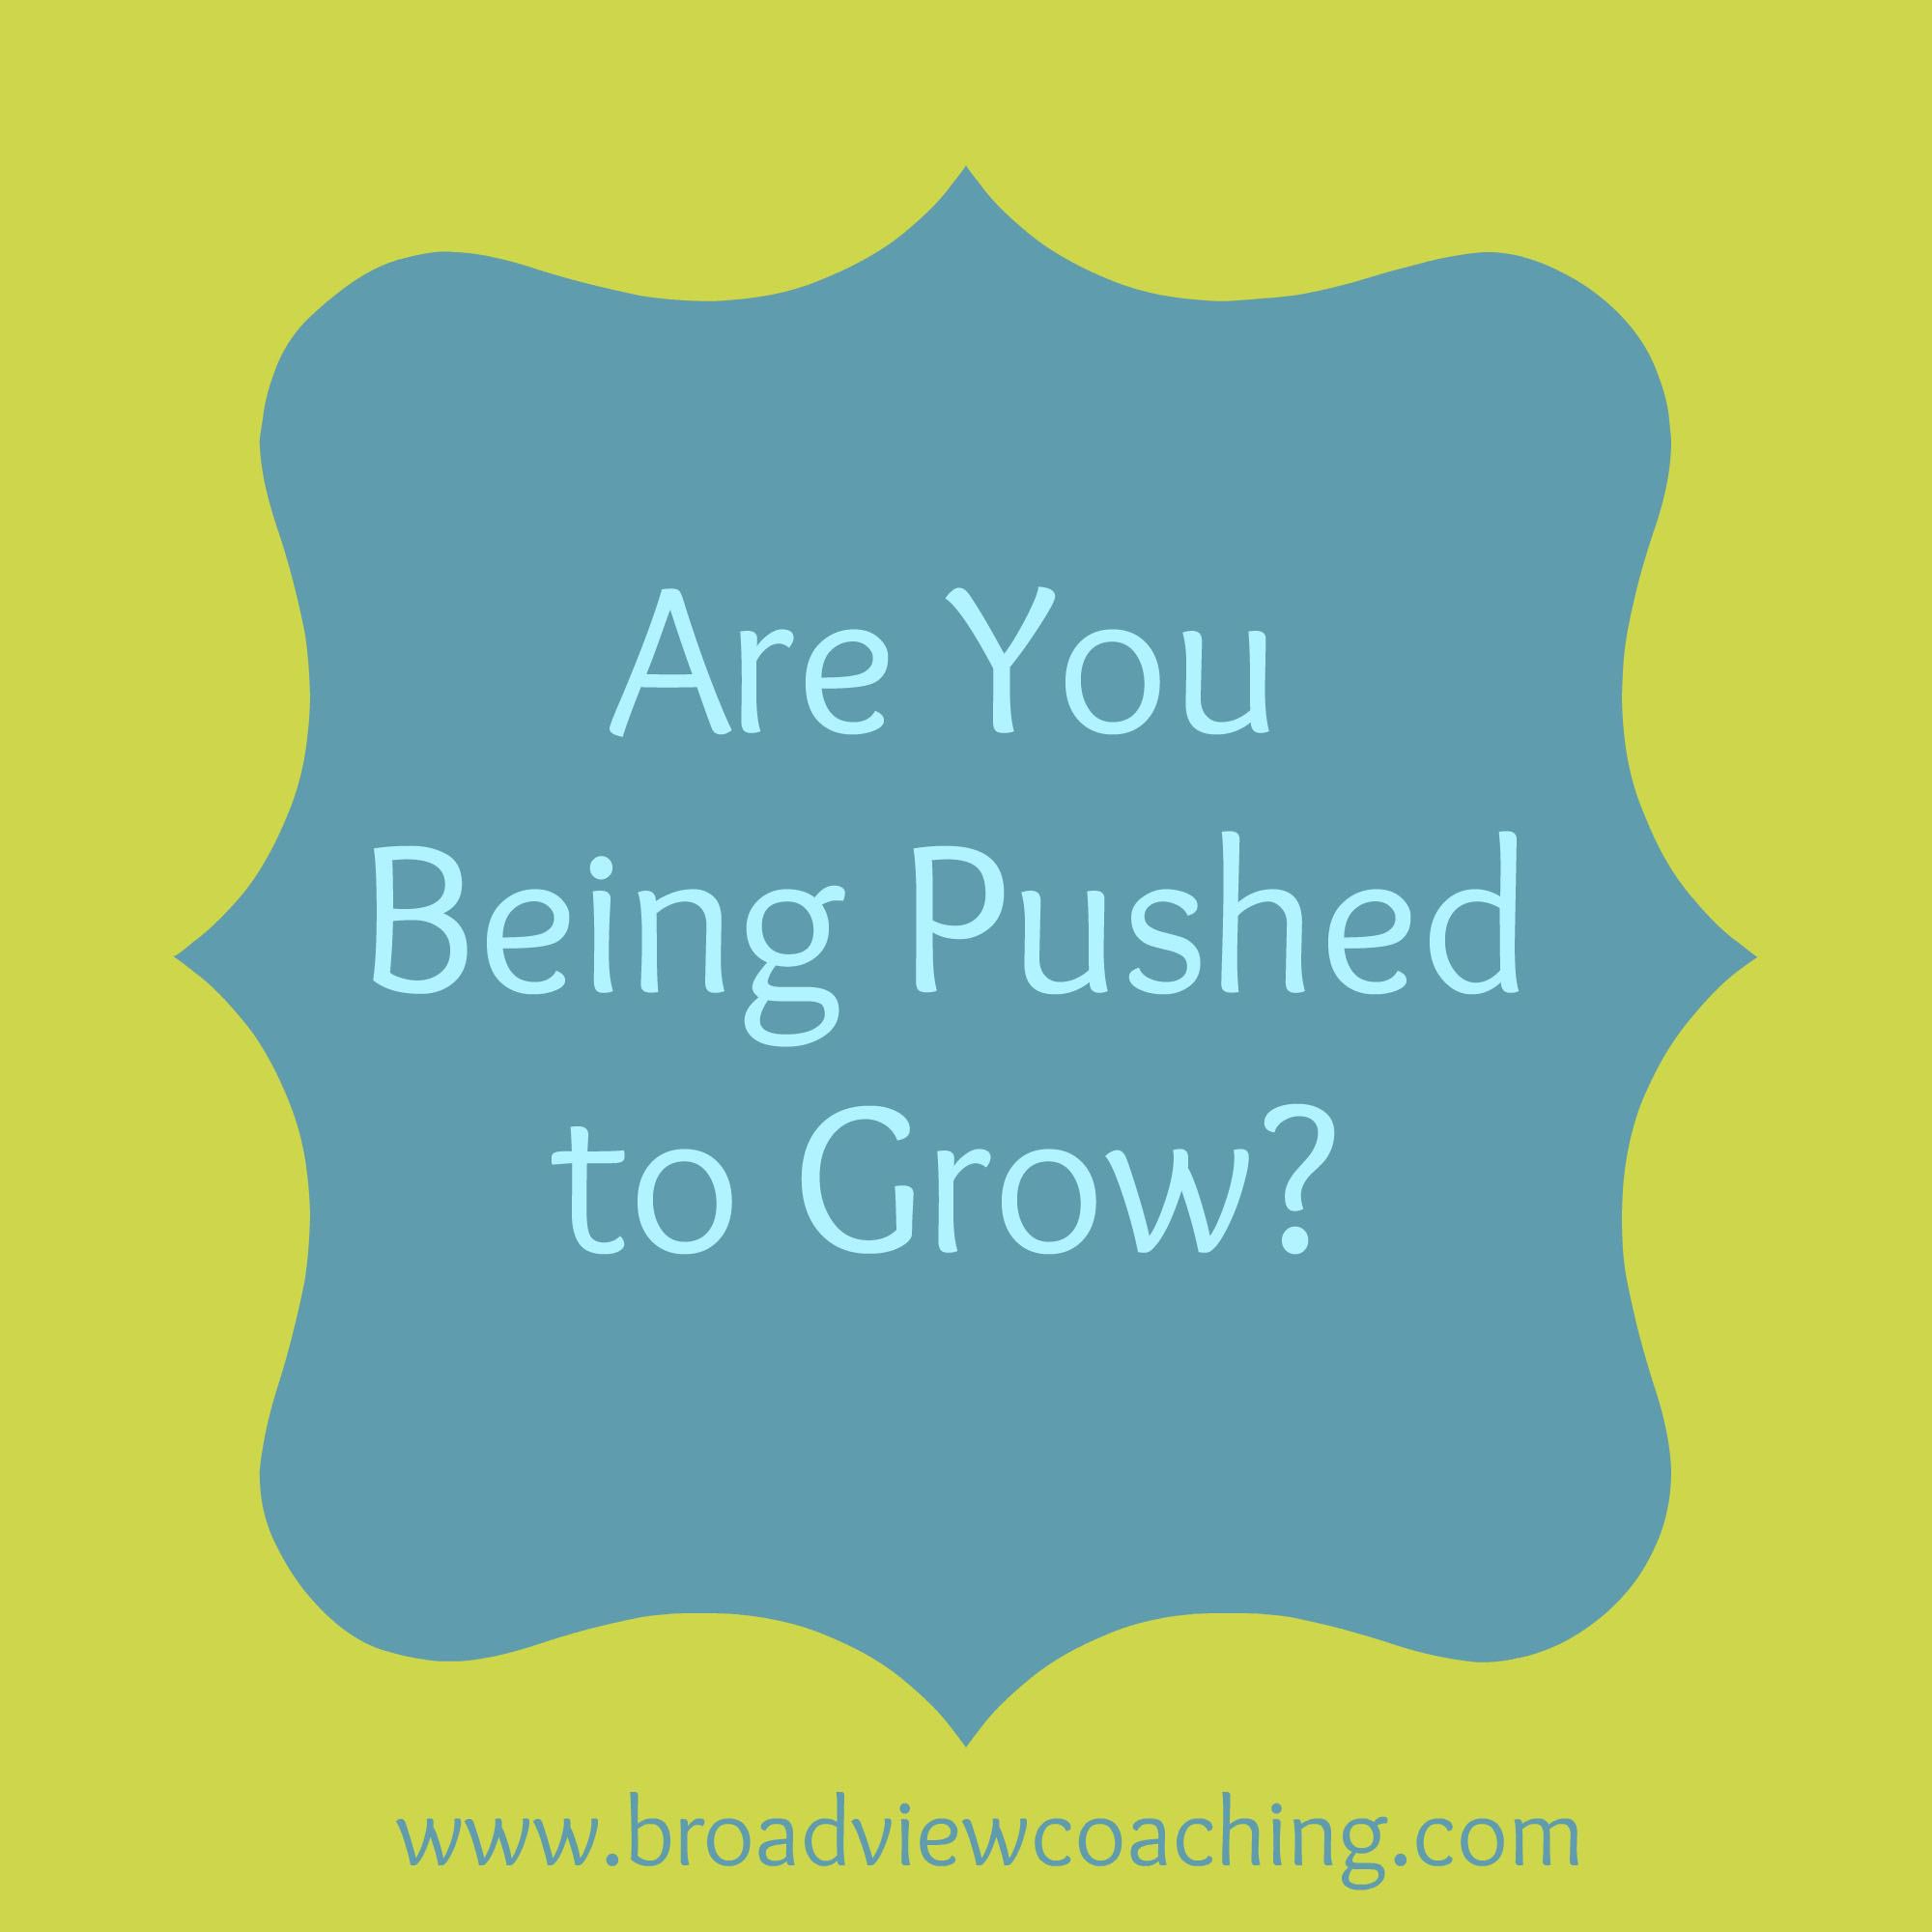 Are you being pushed to grow?